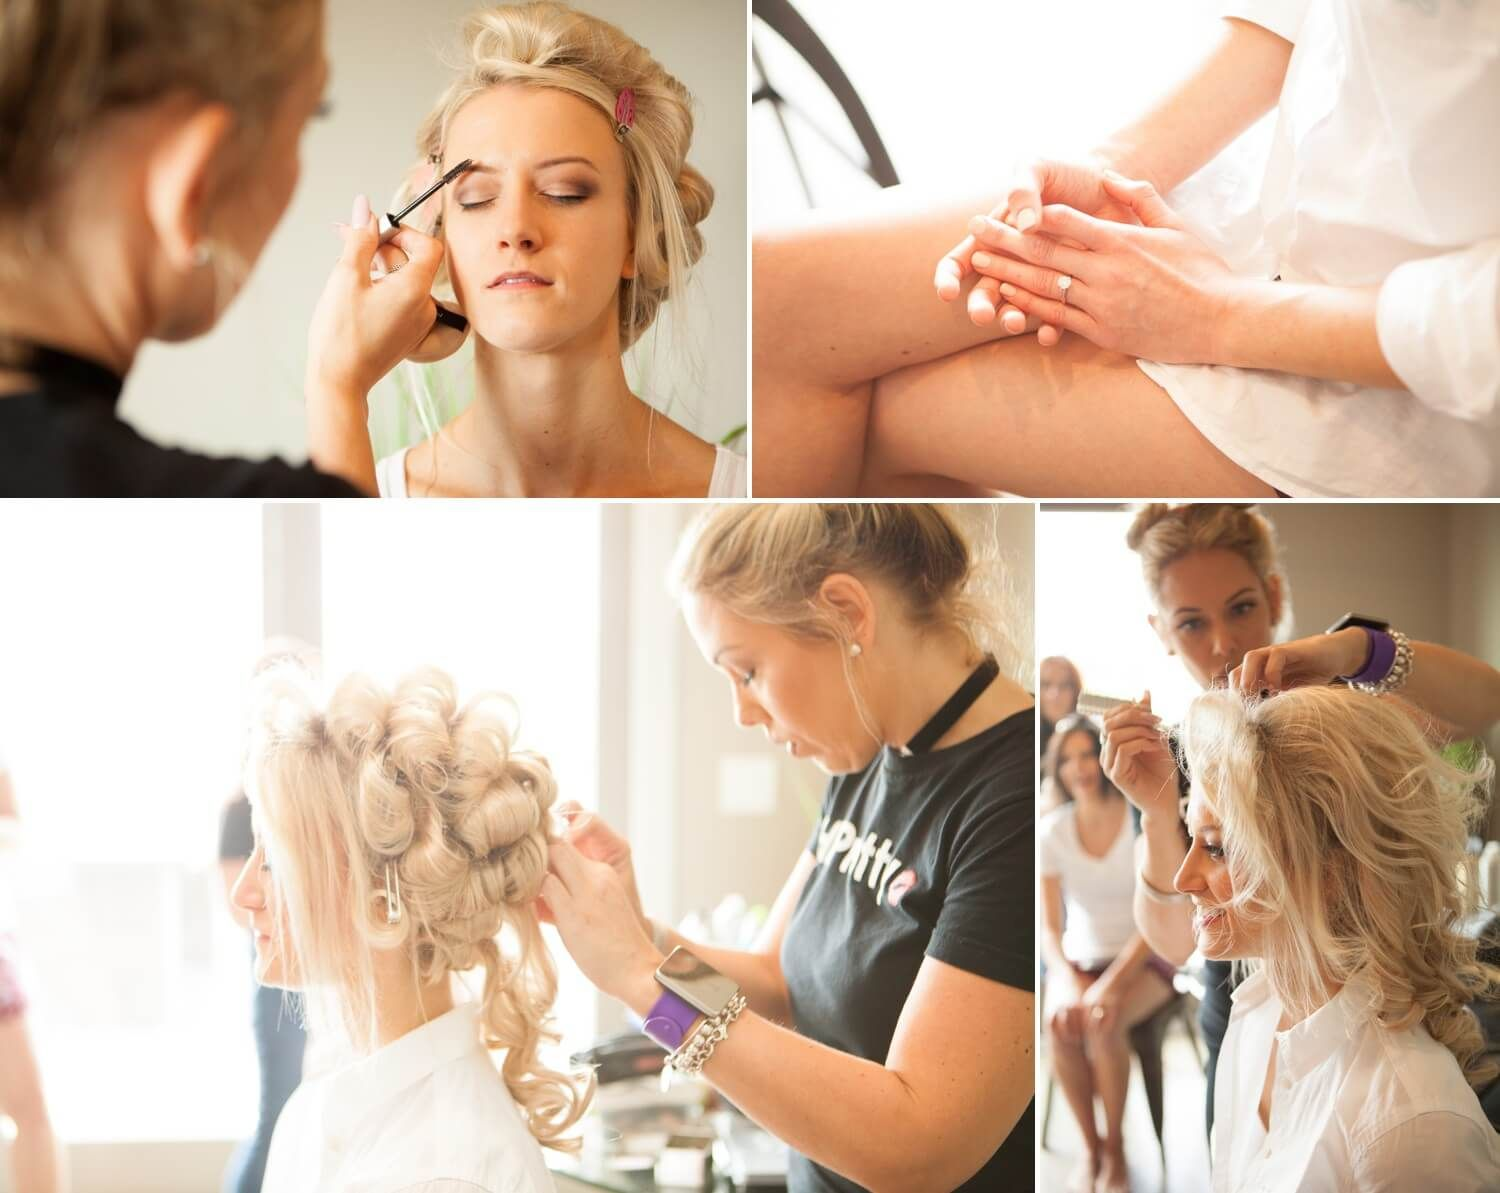 nashville, tn weddingbride gets hair and makeup with